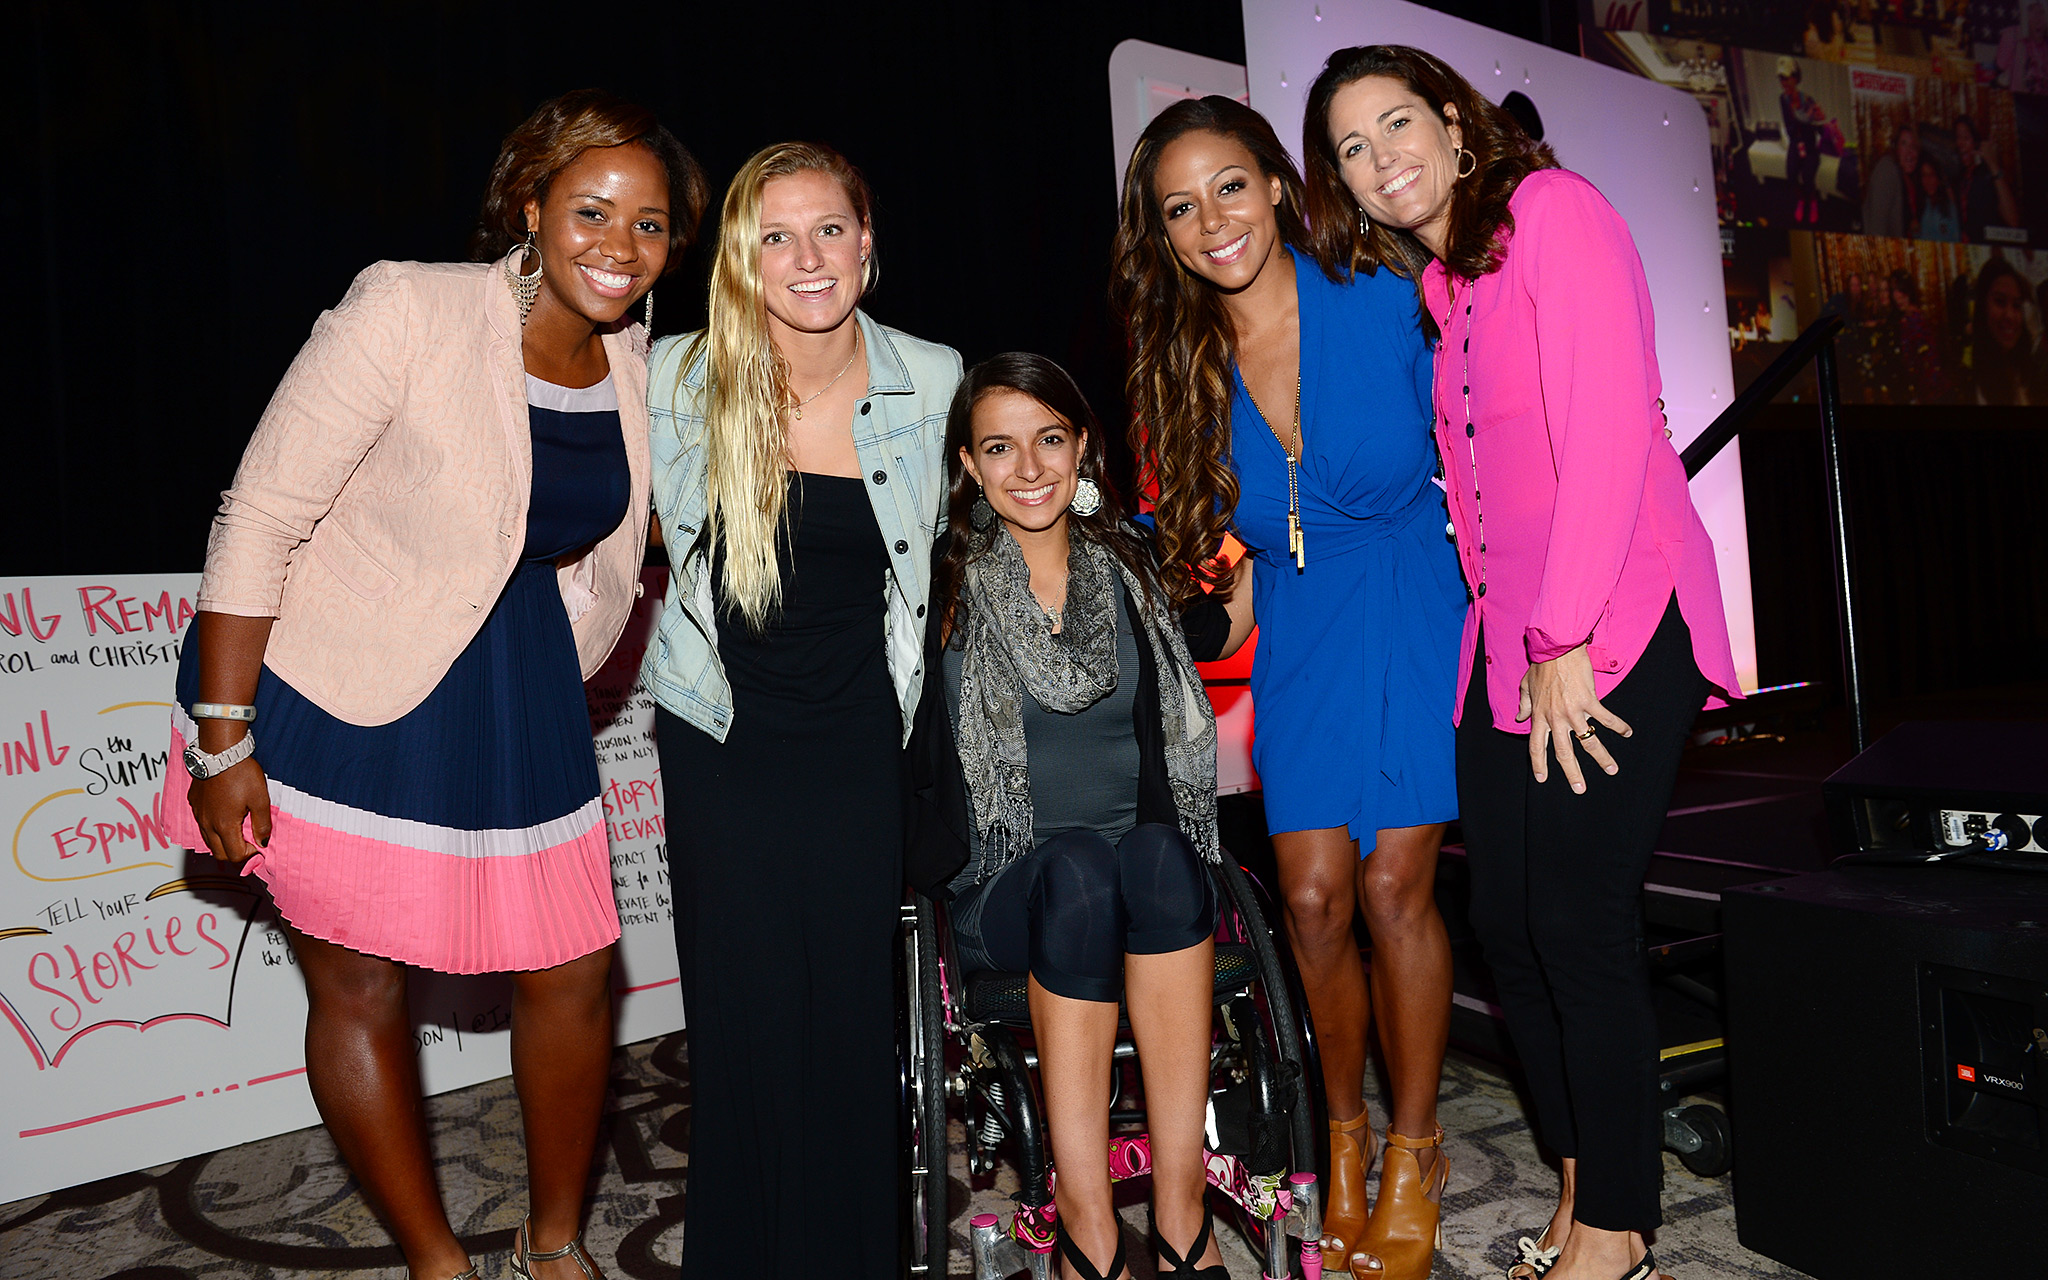 Moderator Julie Foudy, far right, after taking part in the Future panel with Taylor Townsend, Lakey Peterson, Victoria Arlen and Sydney Leroux.